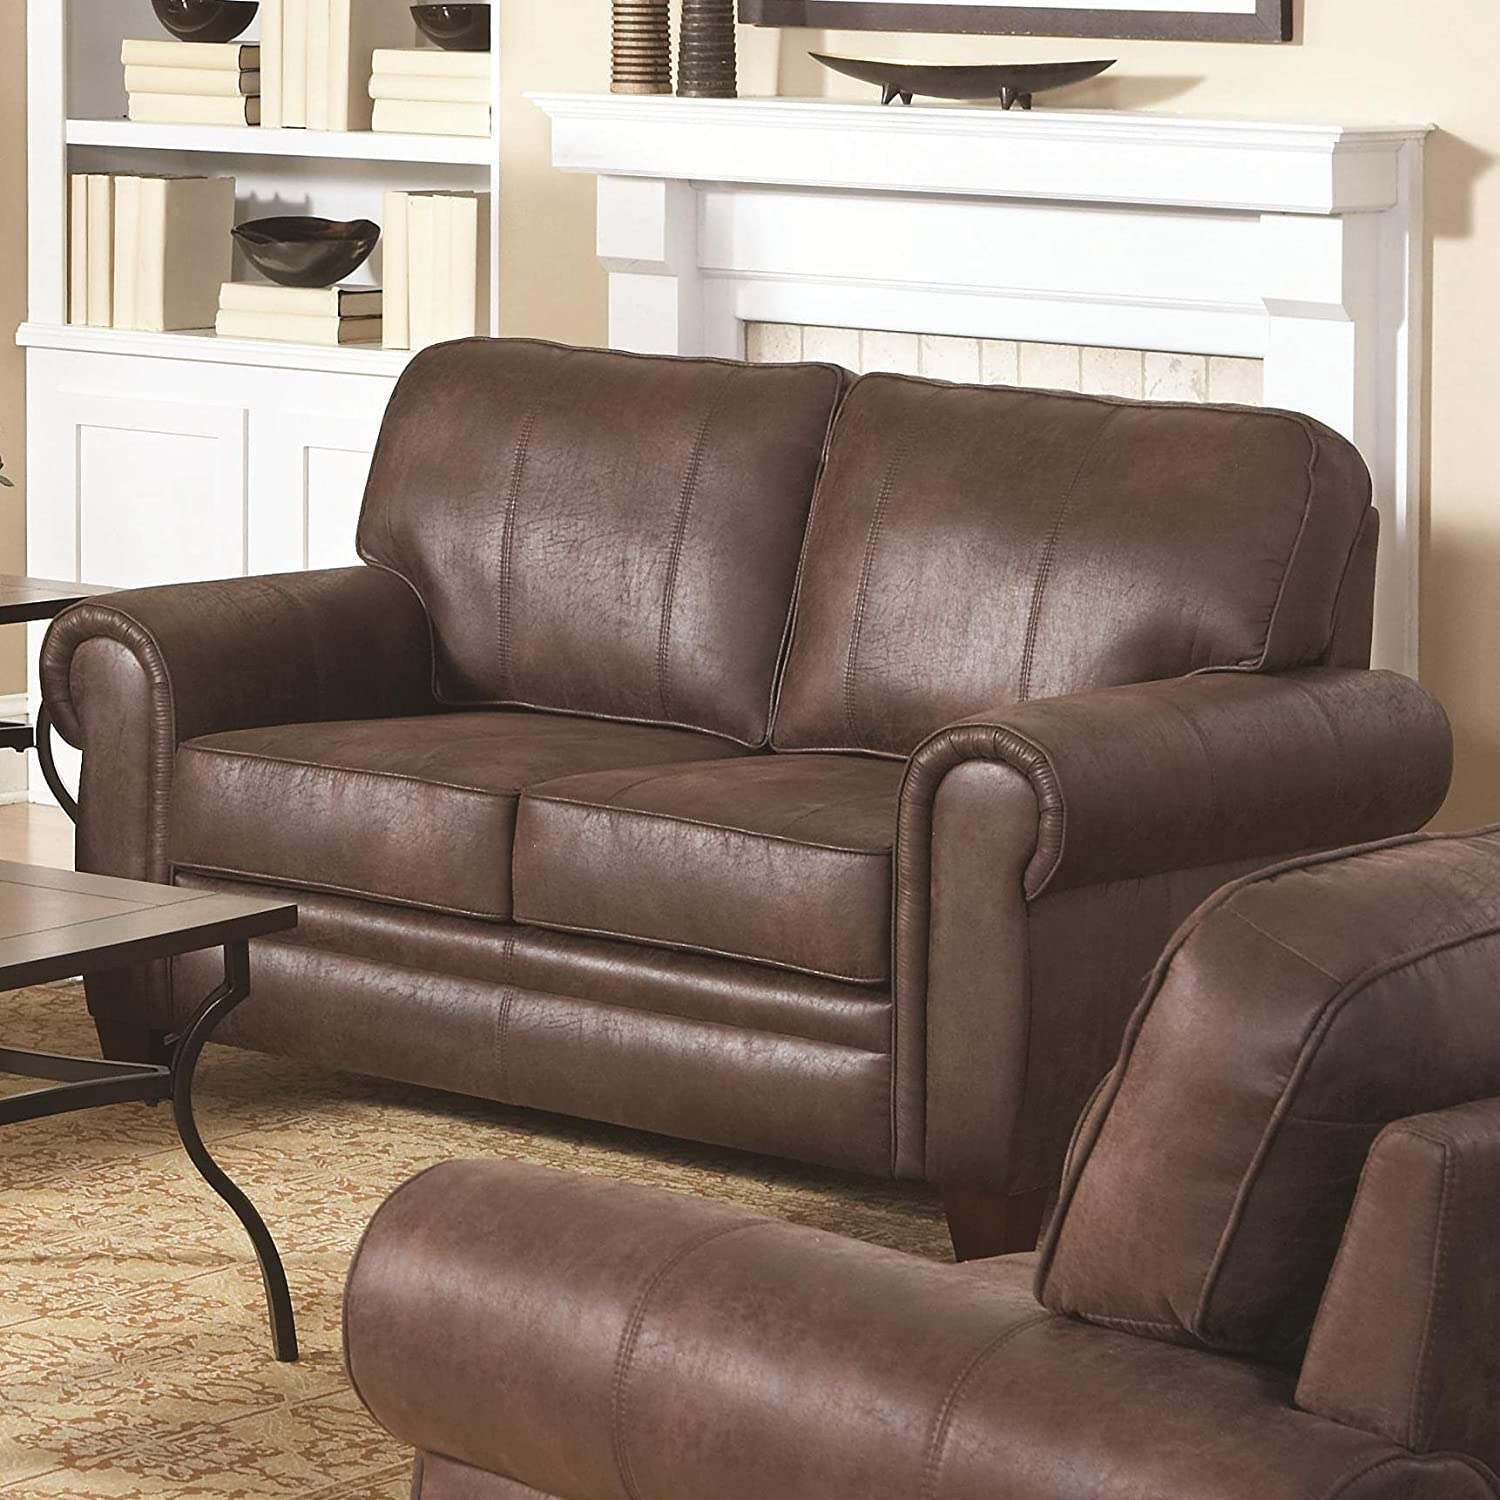 Coaster Home Furnishings 504202 Traditional Loveseat - Brown